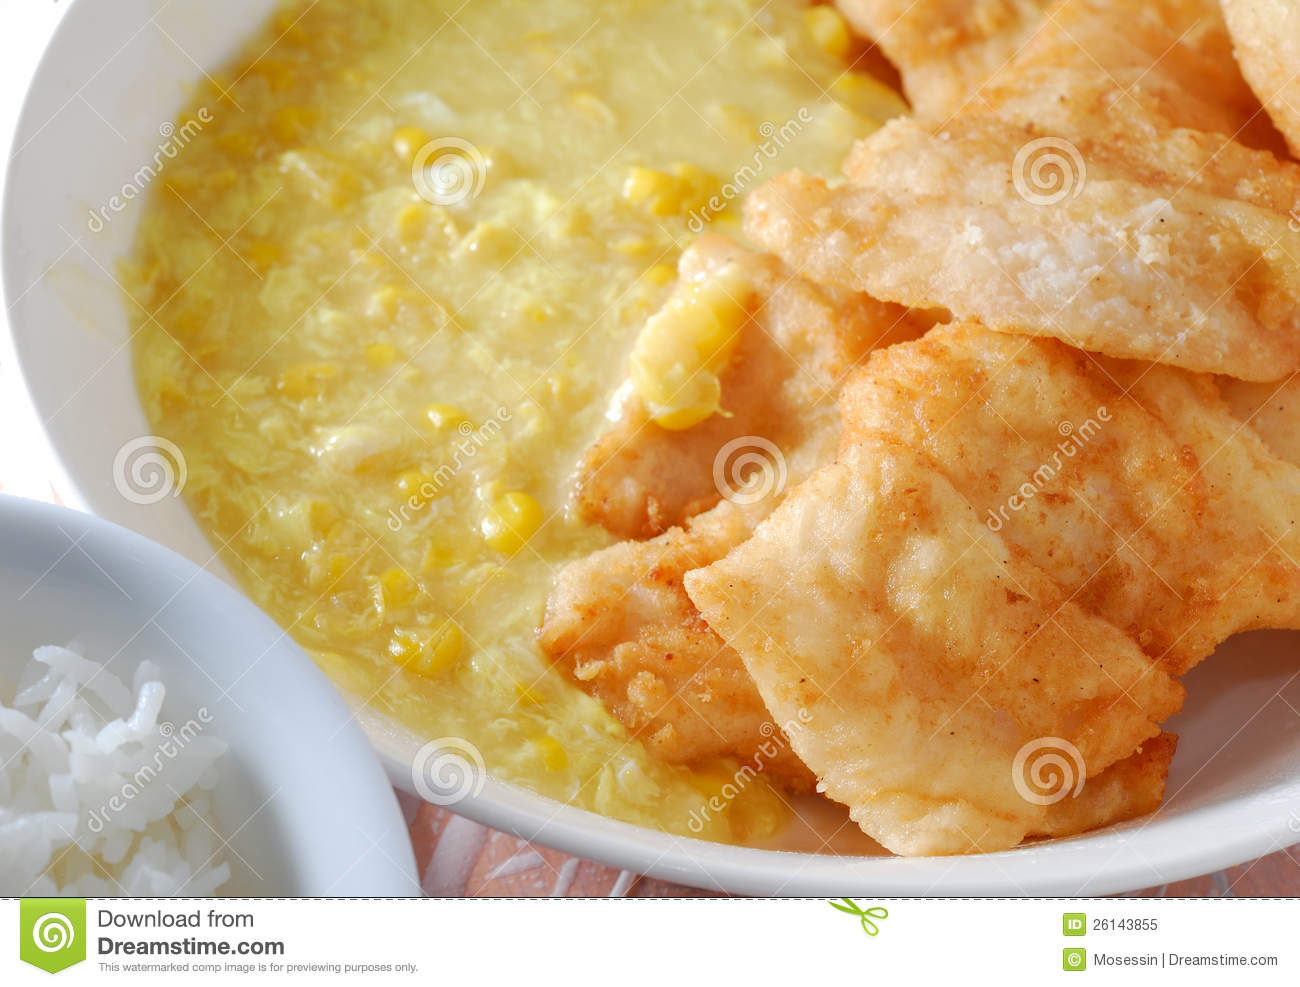 Fish fillet creamed sauce royalty free stock photo image for Fish fillet sauce